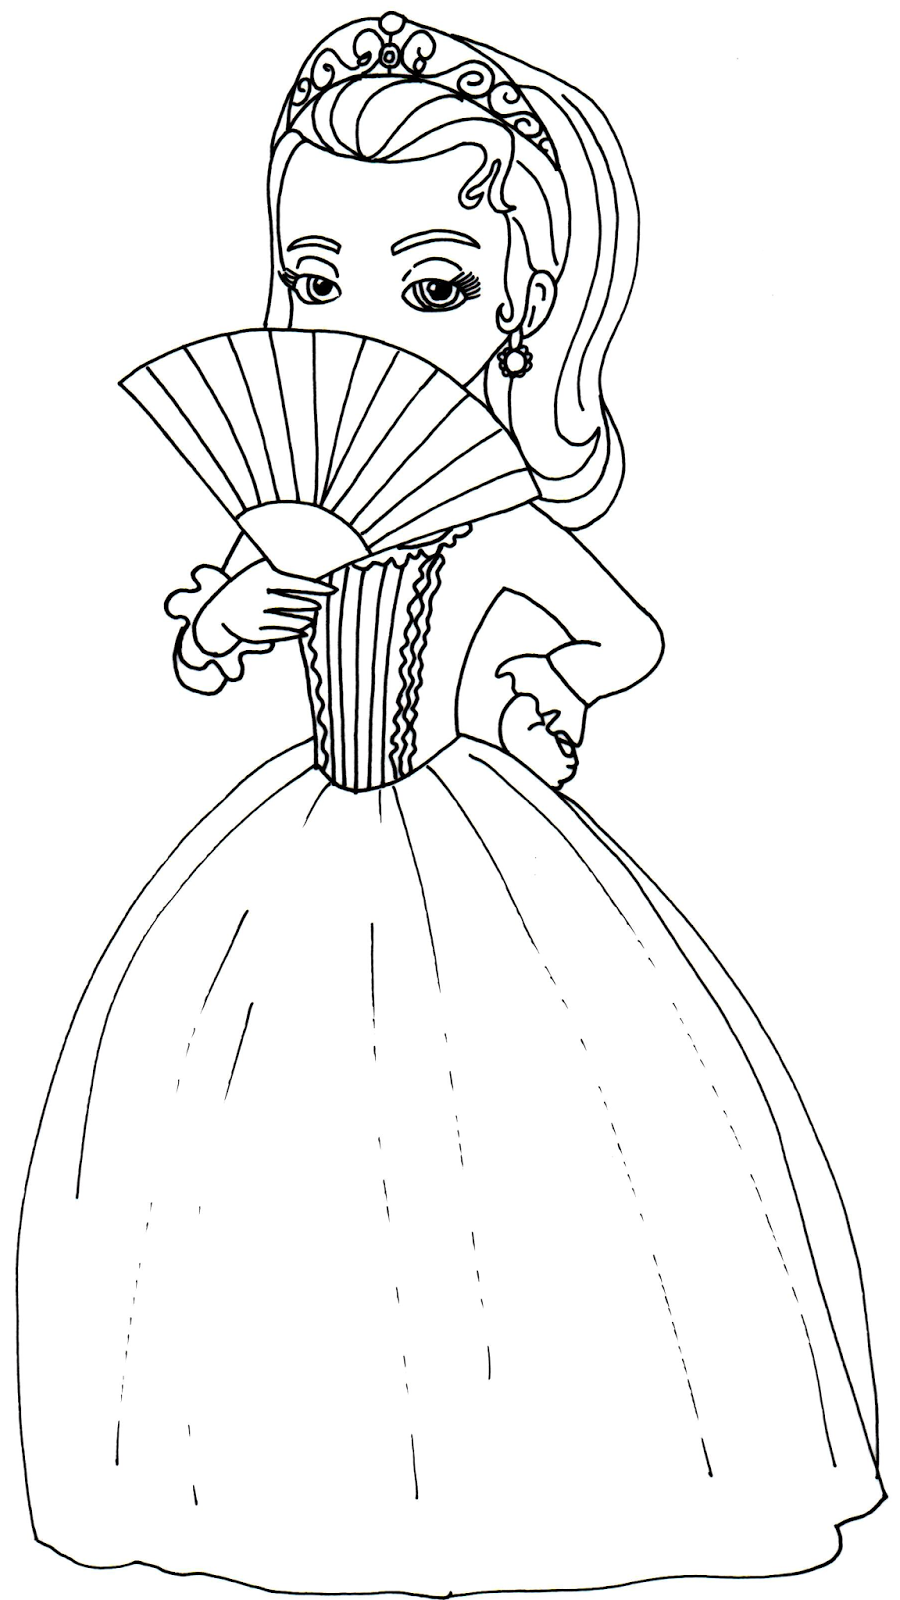 Princess sofia coloring pages free